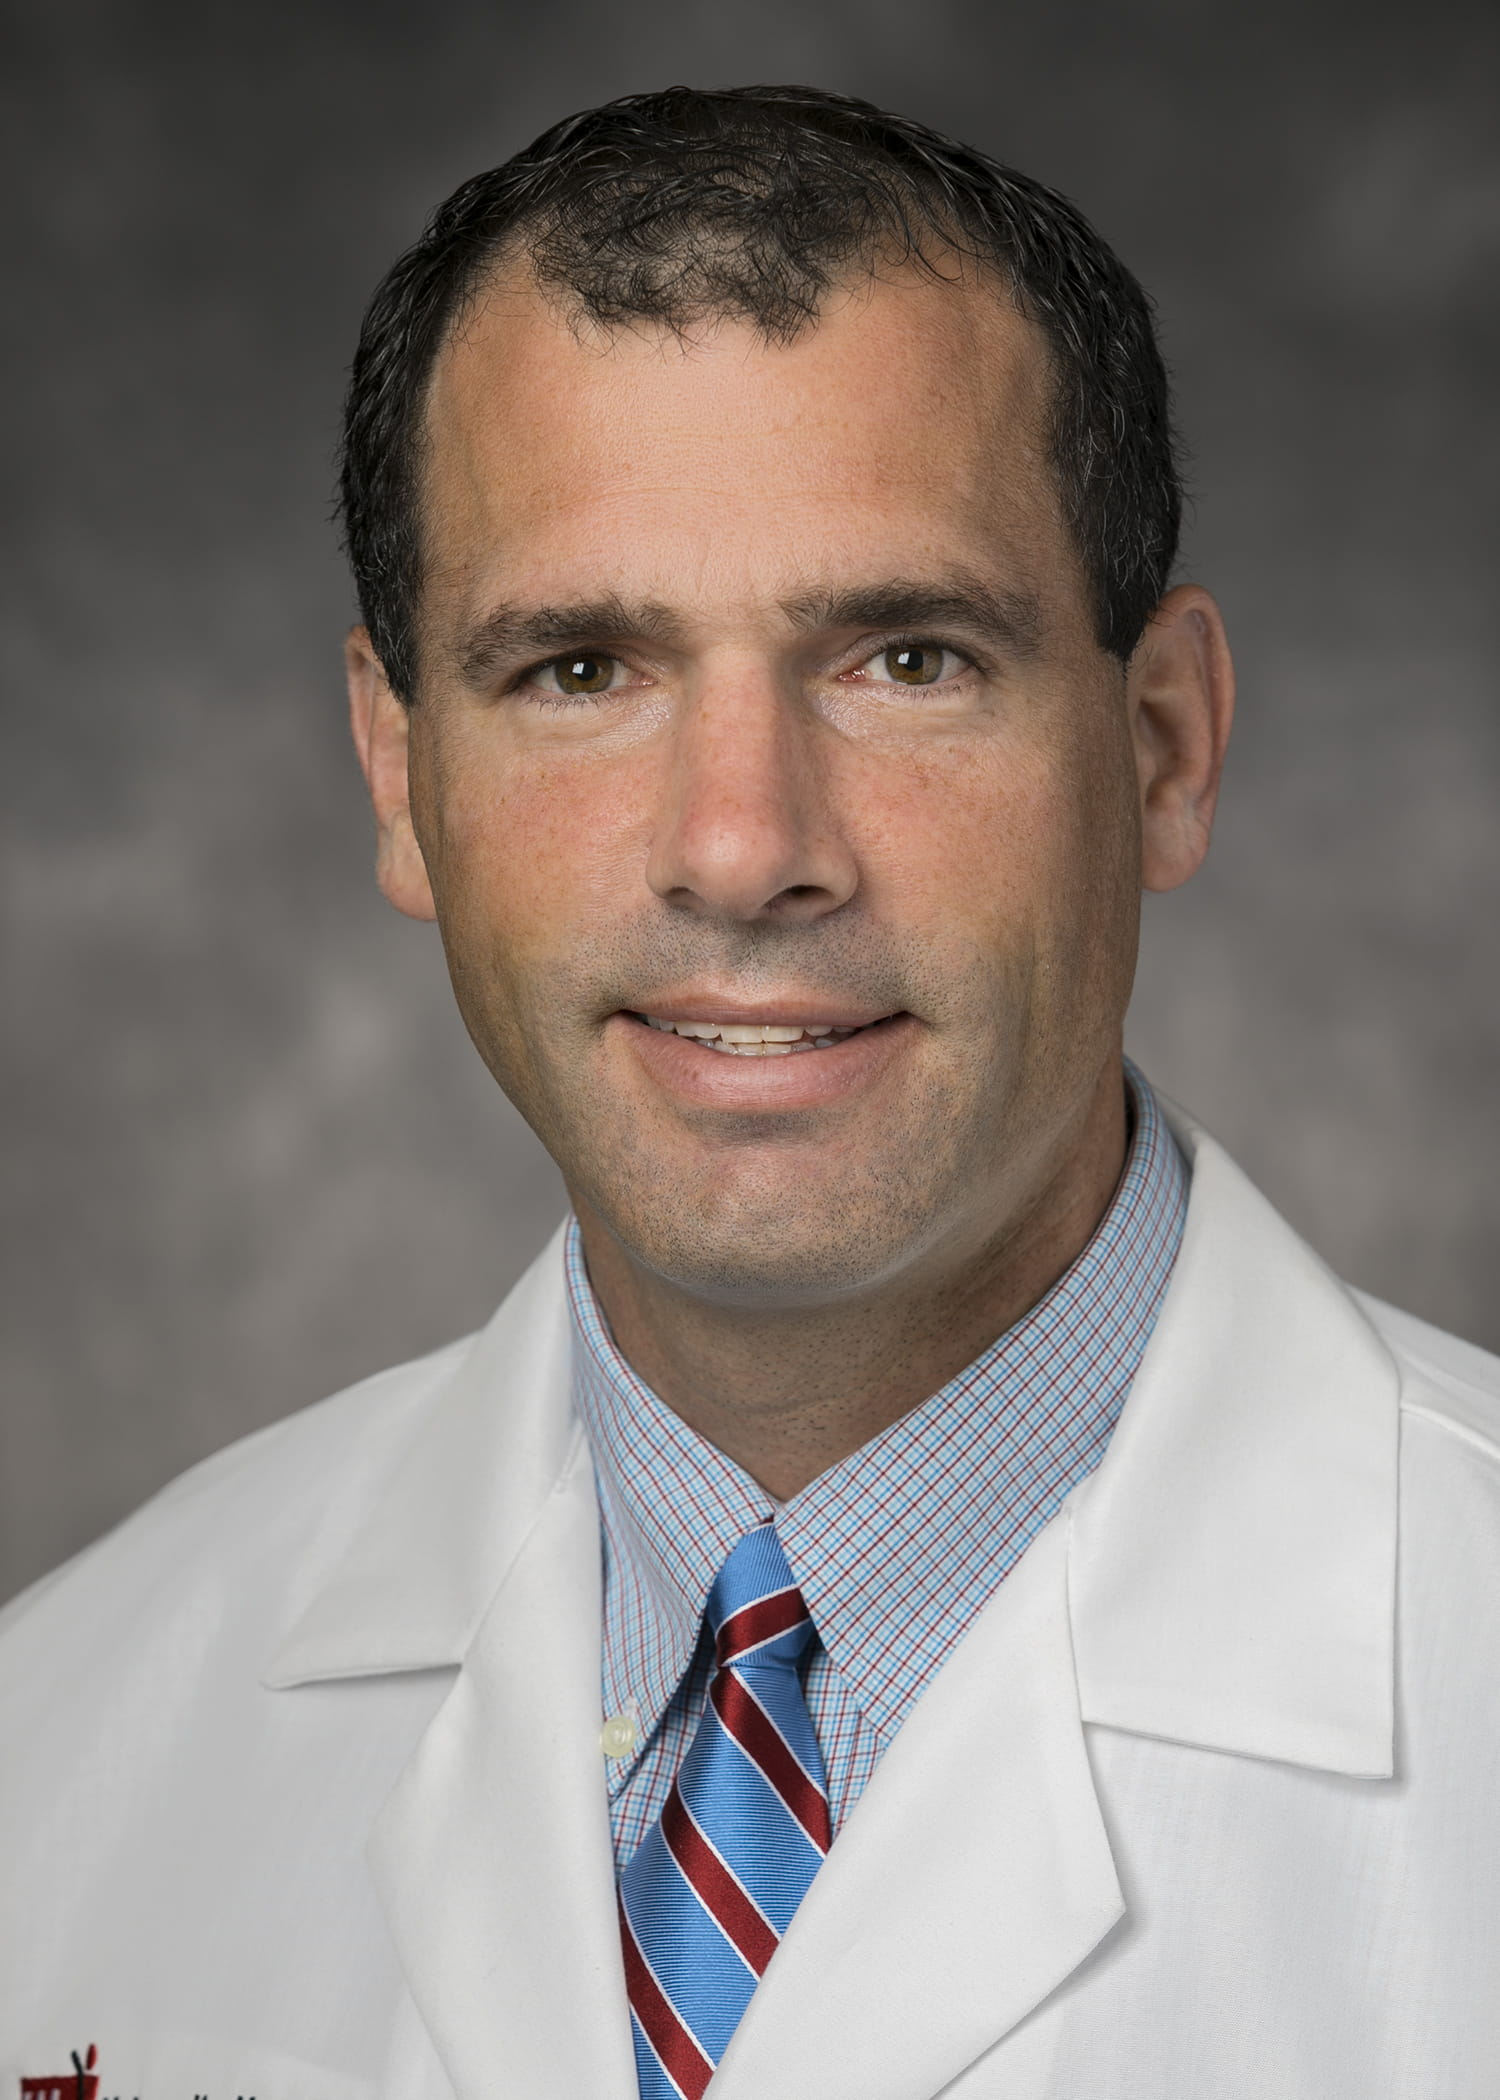 Jordan M Winter MD appointed Chief of Surgical Oncology UH